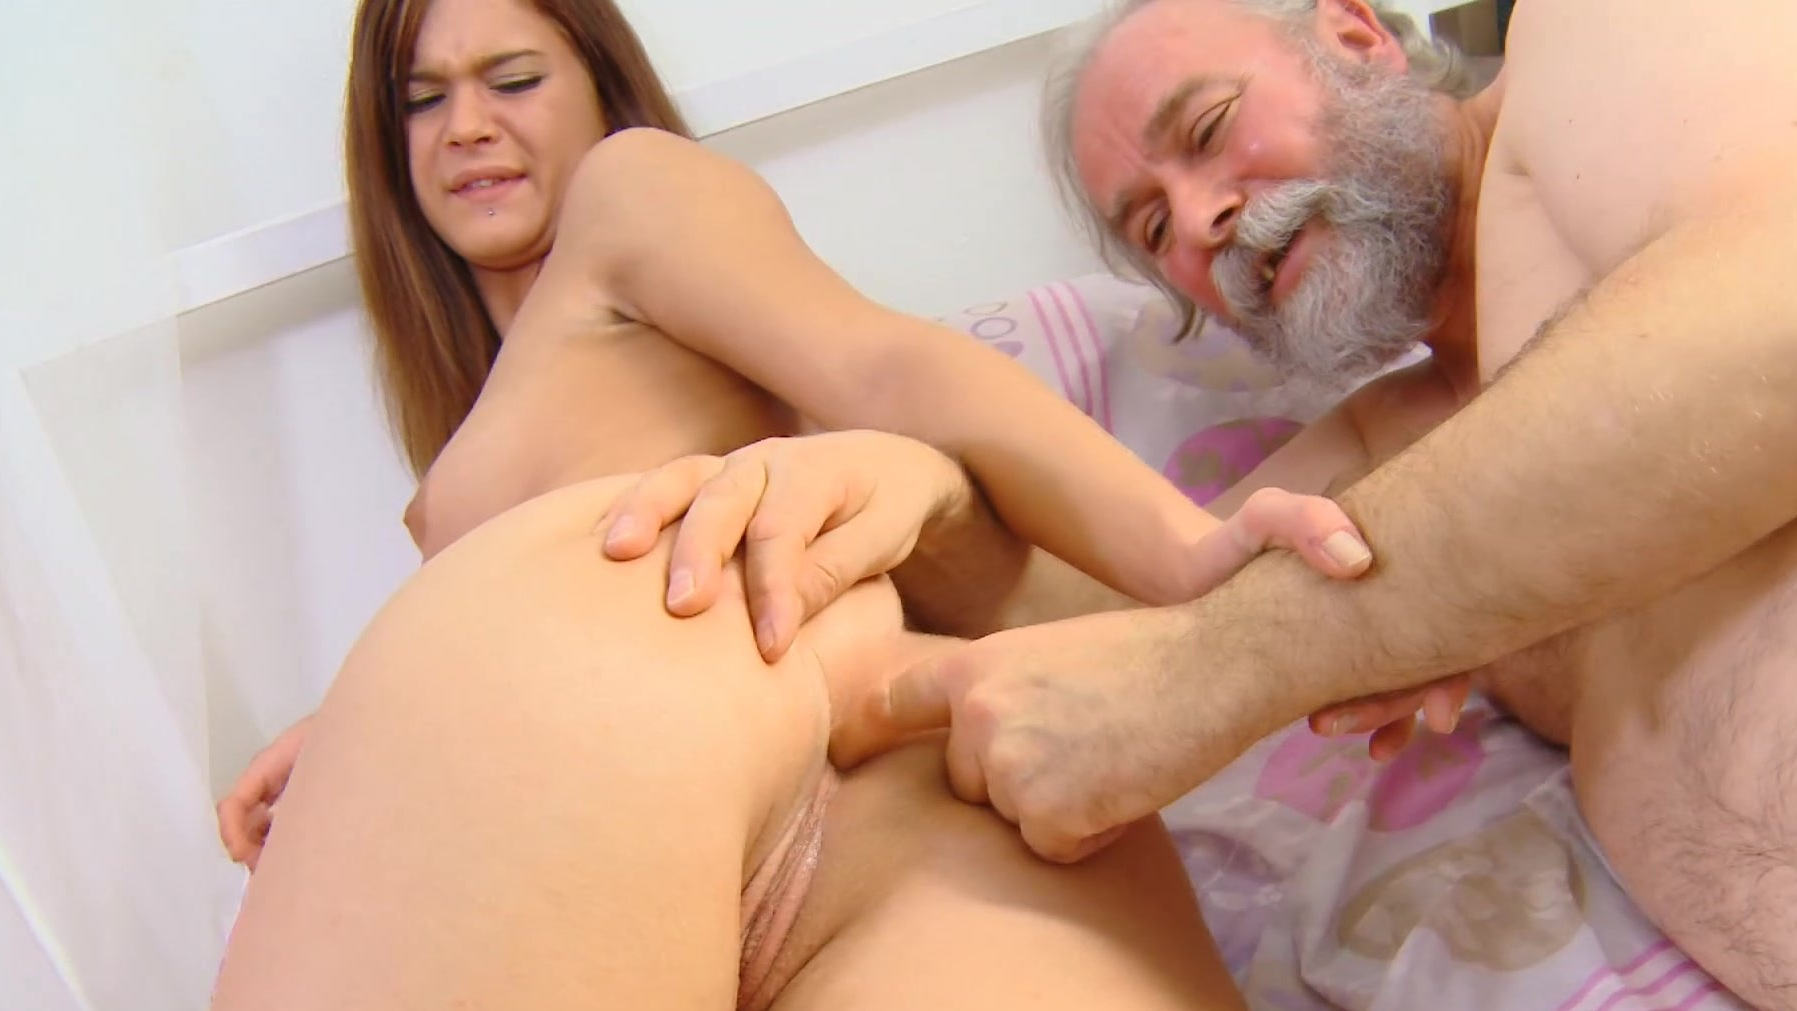 Teen finger fucked by old